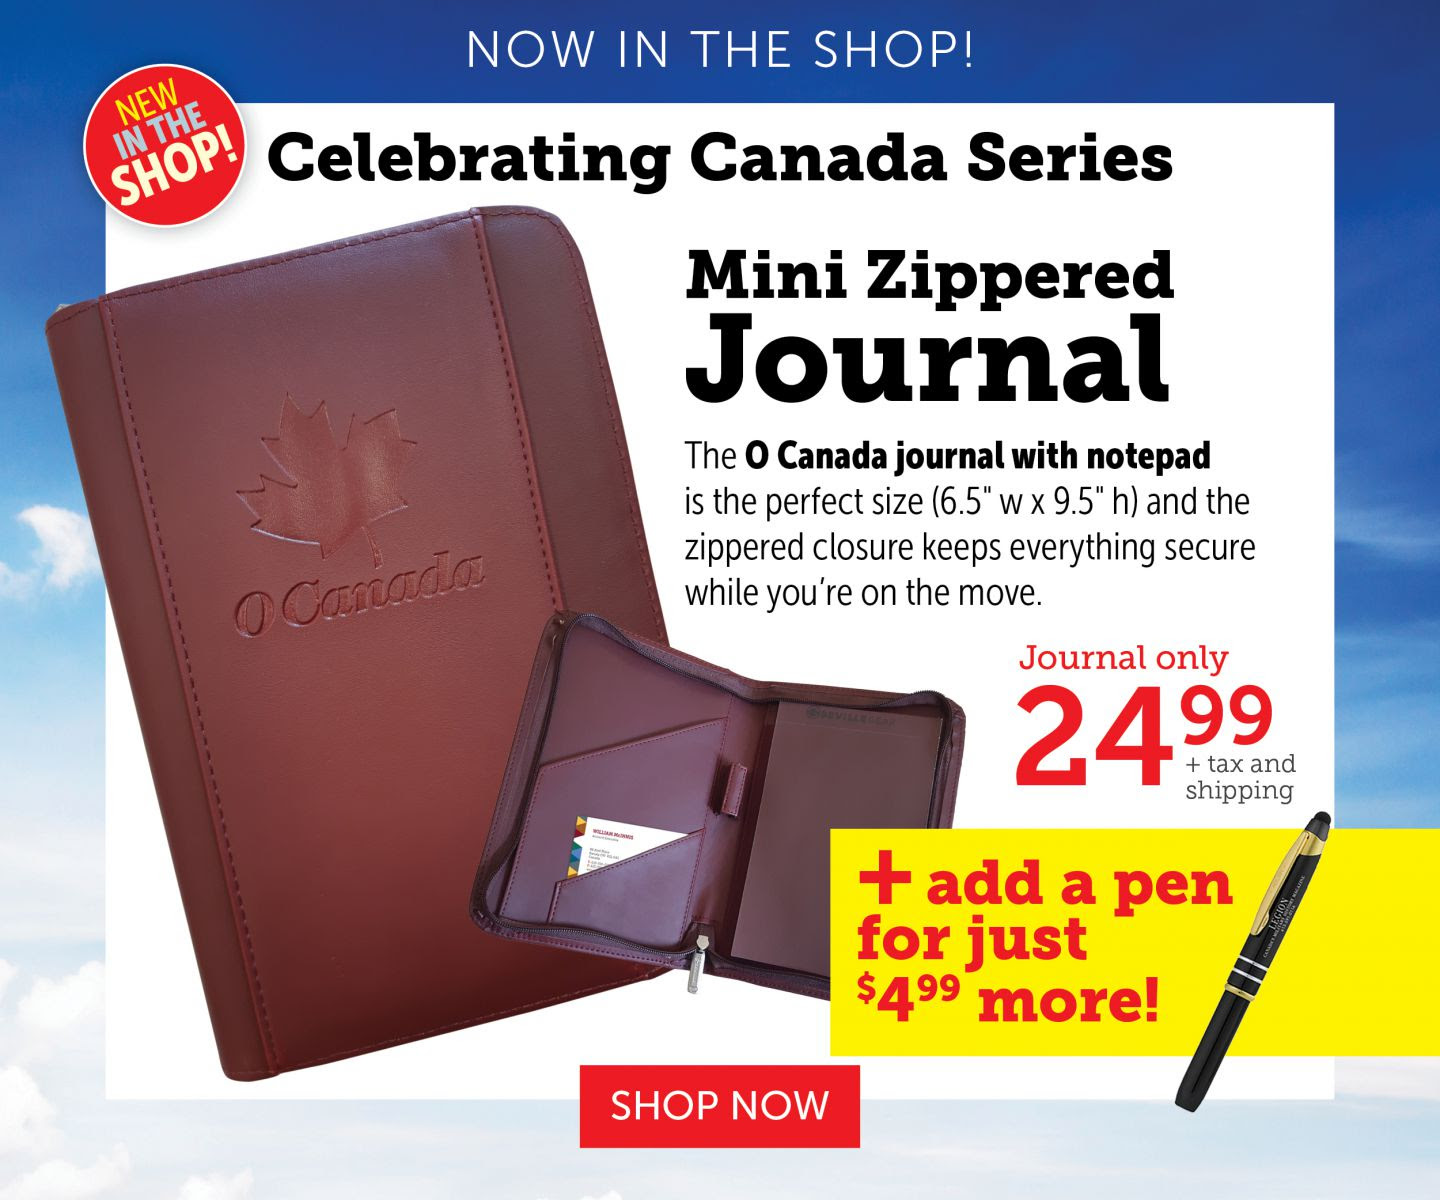 Celebrating Canada Series - O Canada Journal